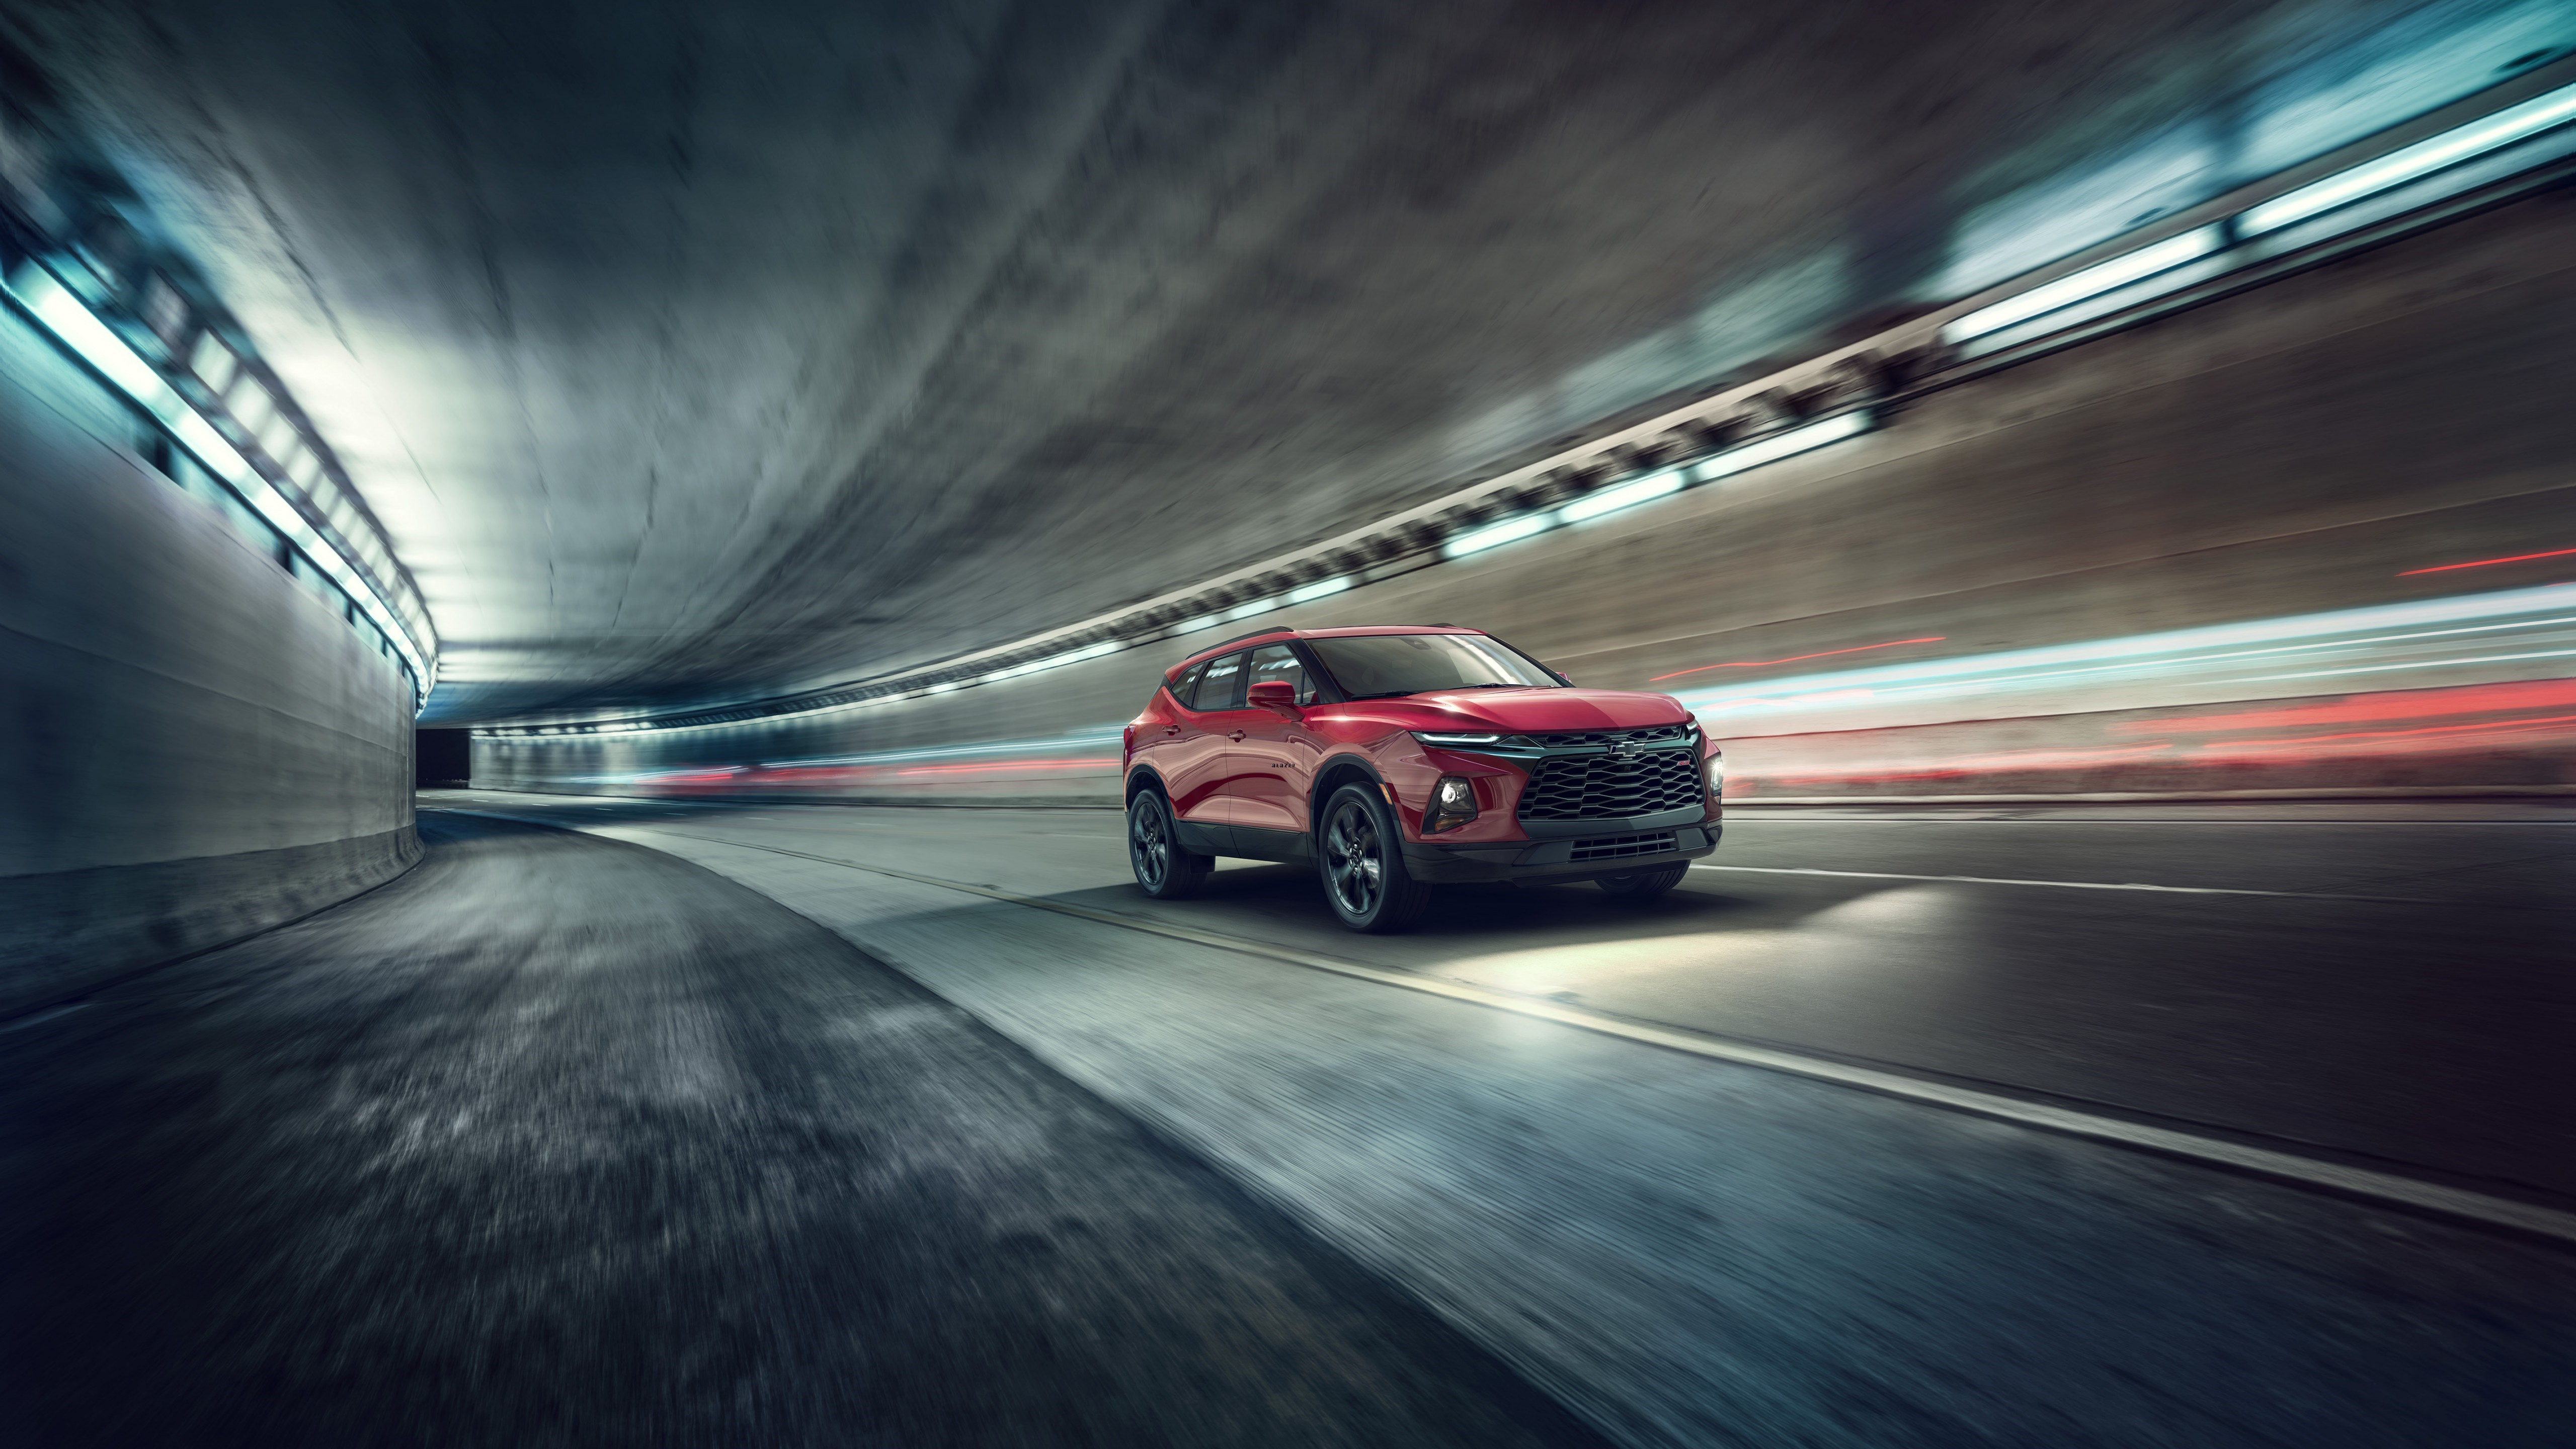 Chevrolet Blazer wallpaper 5120x2880